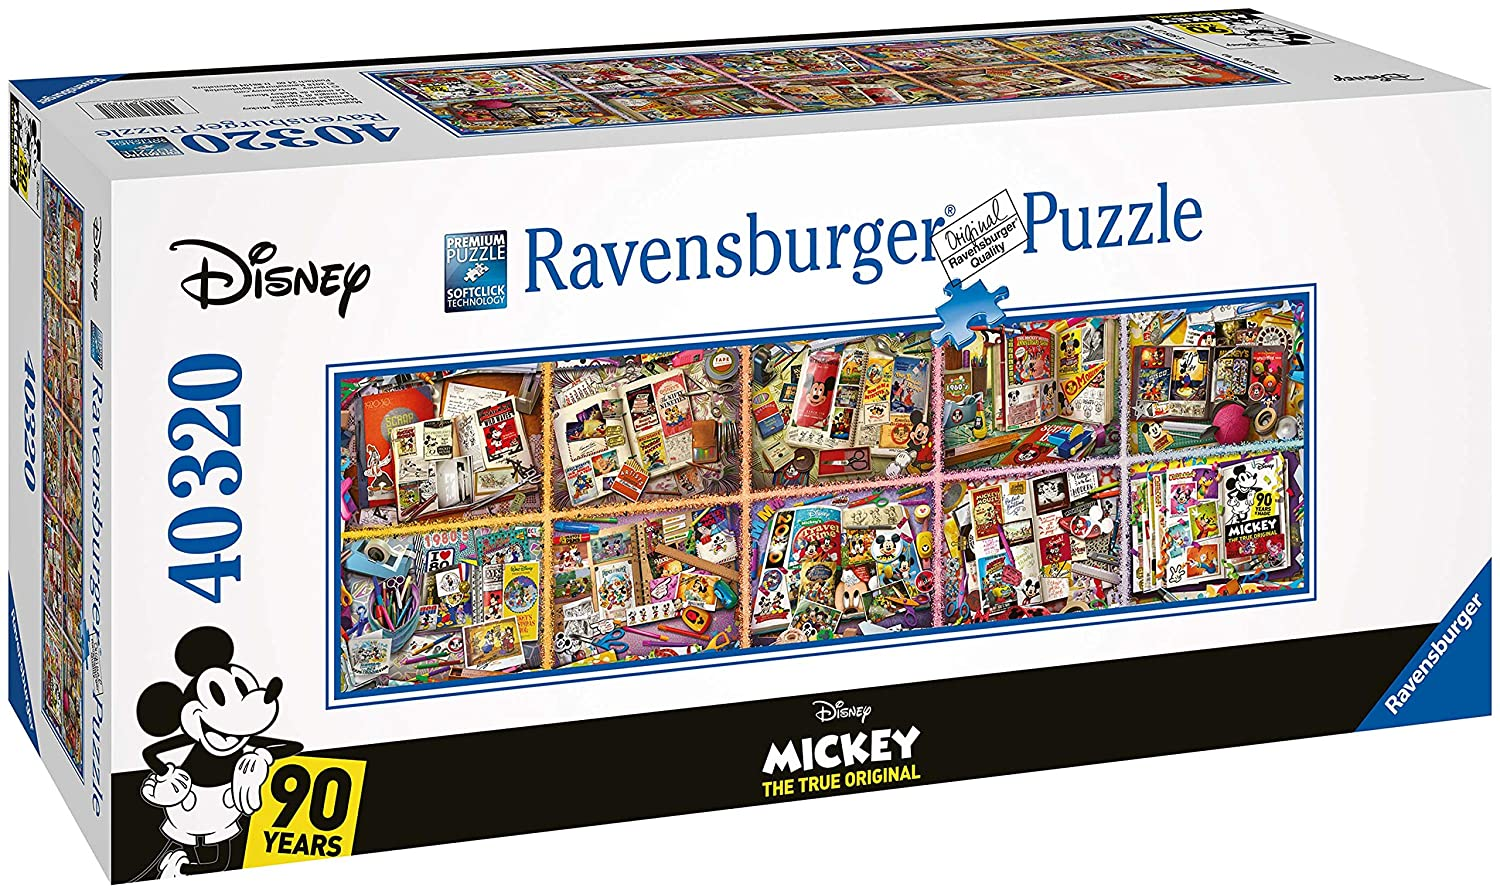 【激安大特価!】  Ravensburger Disney Years, Mickey through the Years, B07FCMF4XJ 40,000pc Jigsaw Disney Puzzle B07FCMF4XJ, アクシスR&Dゴルフ:dd679a81 --- a0267596.xsph.ru